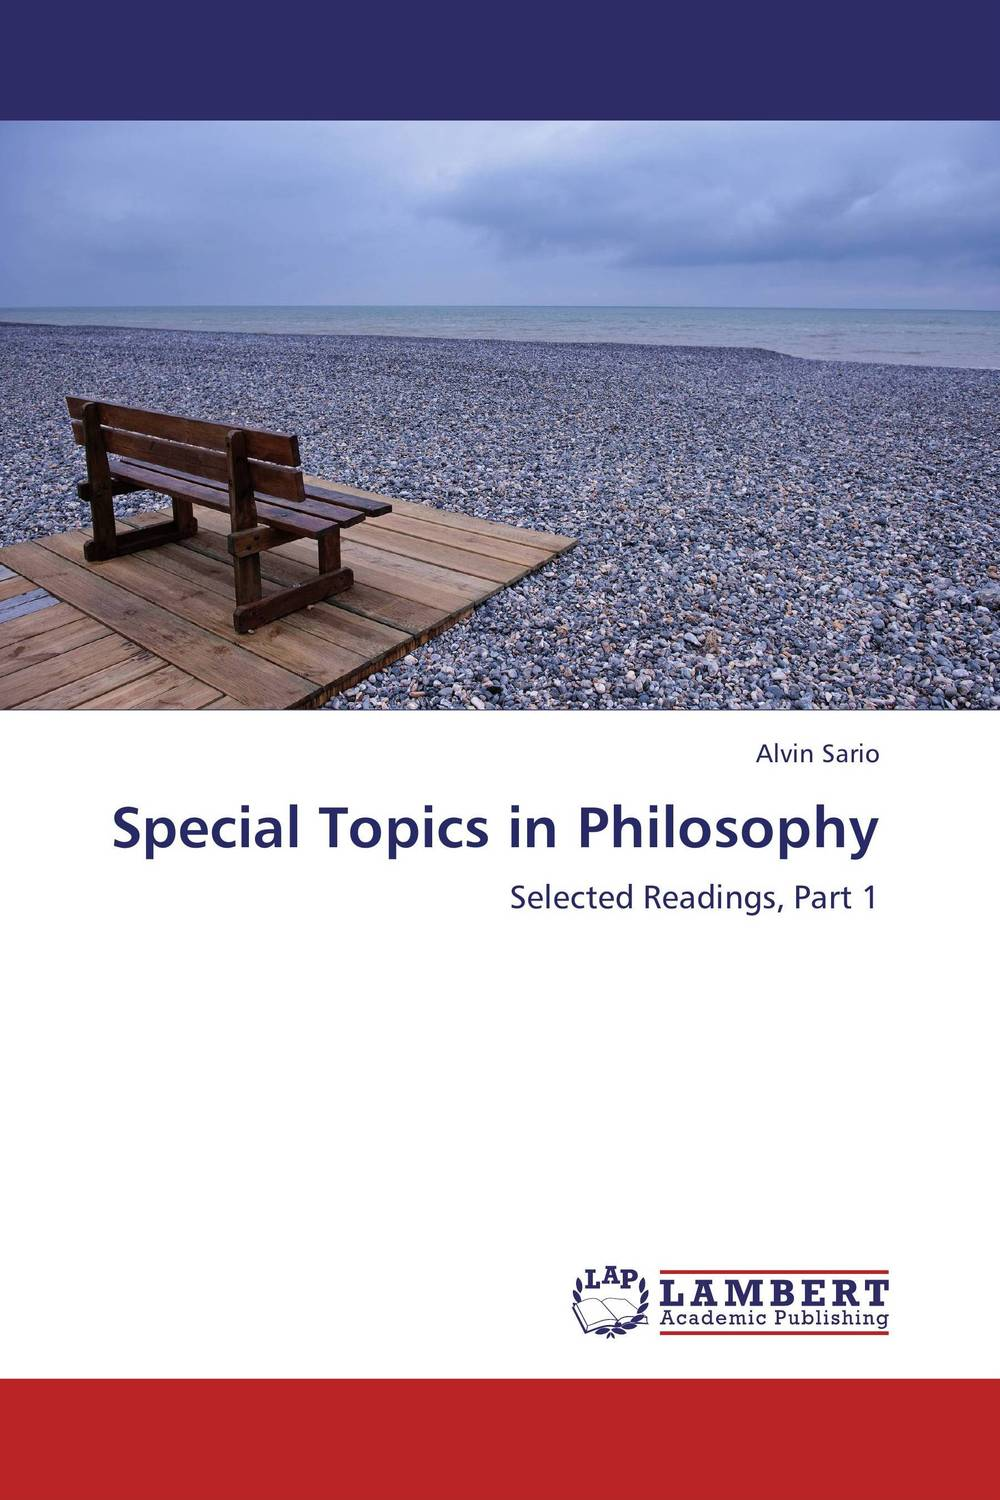 Special Topics in Philosophy philosophical issues in psychiatry iv